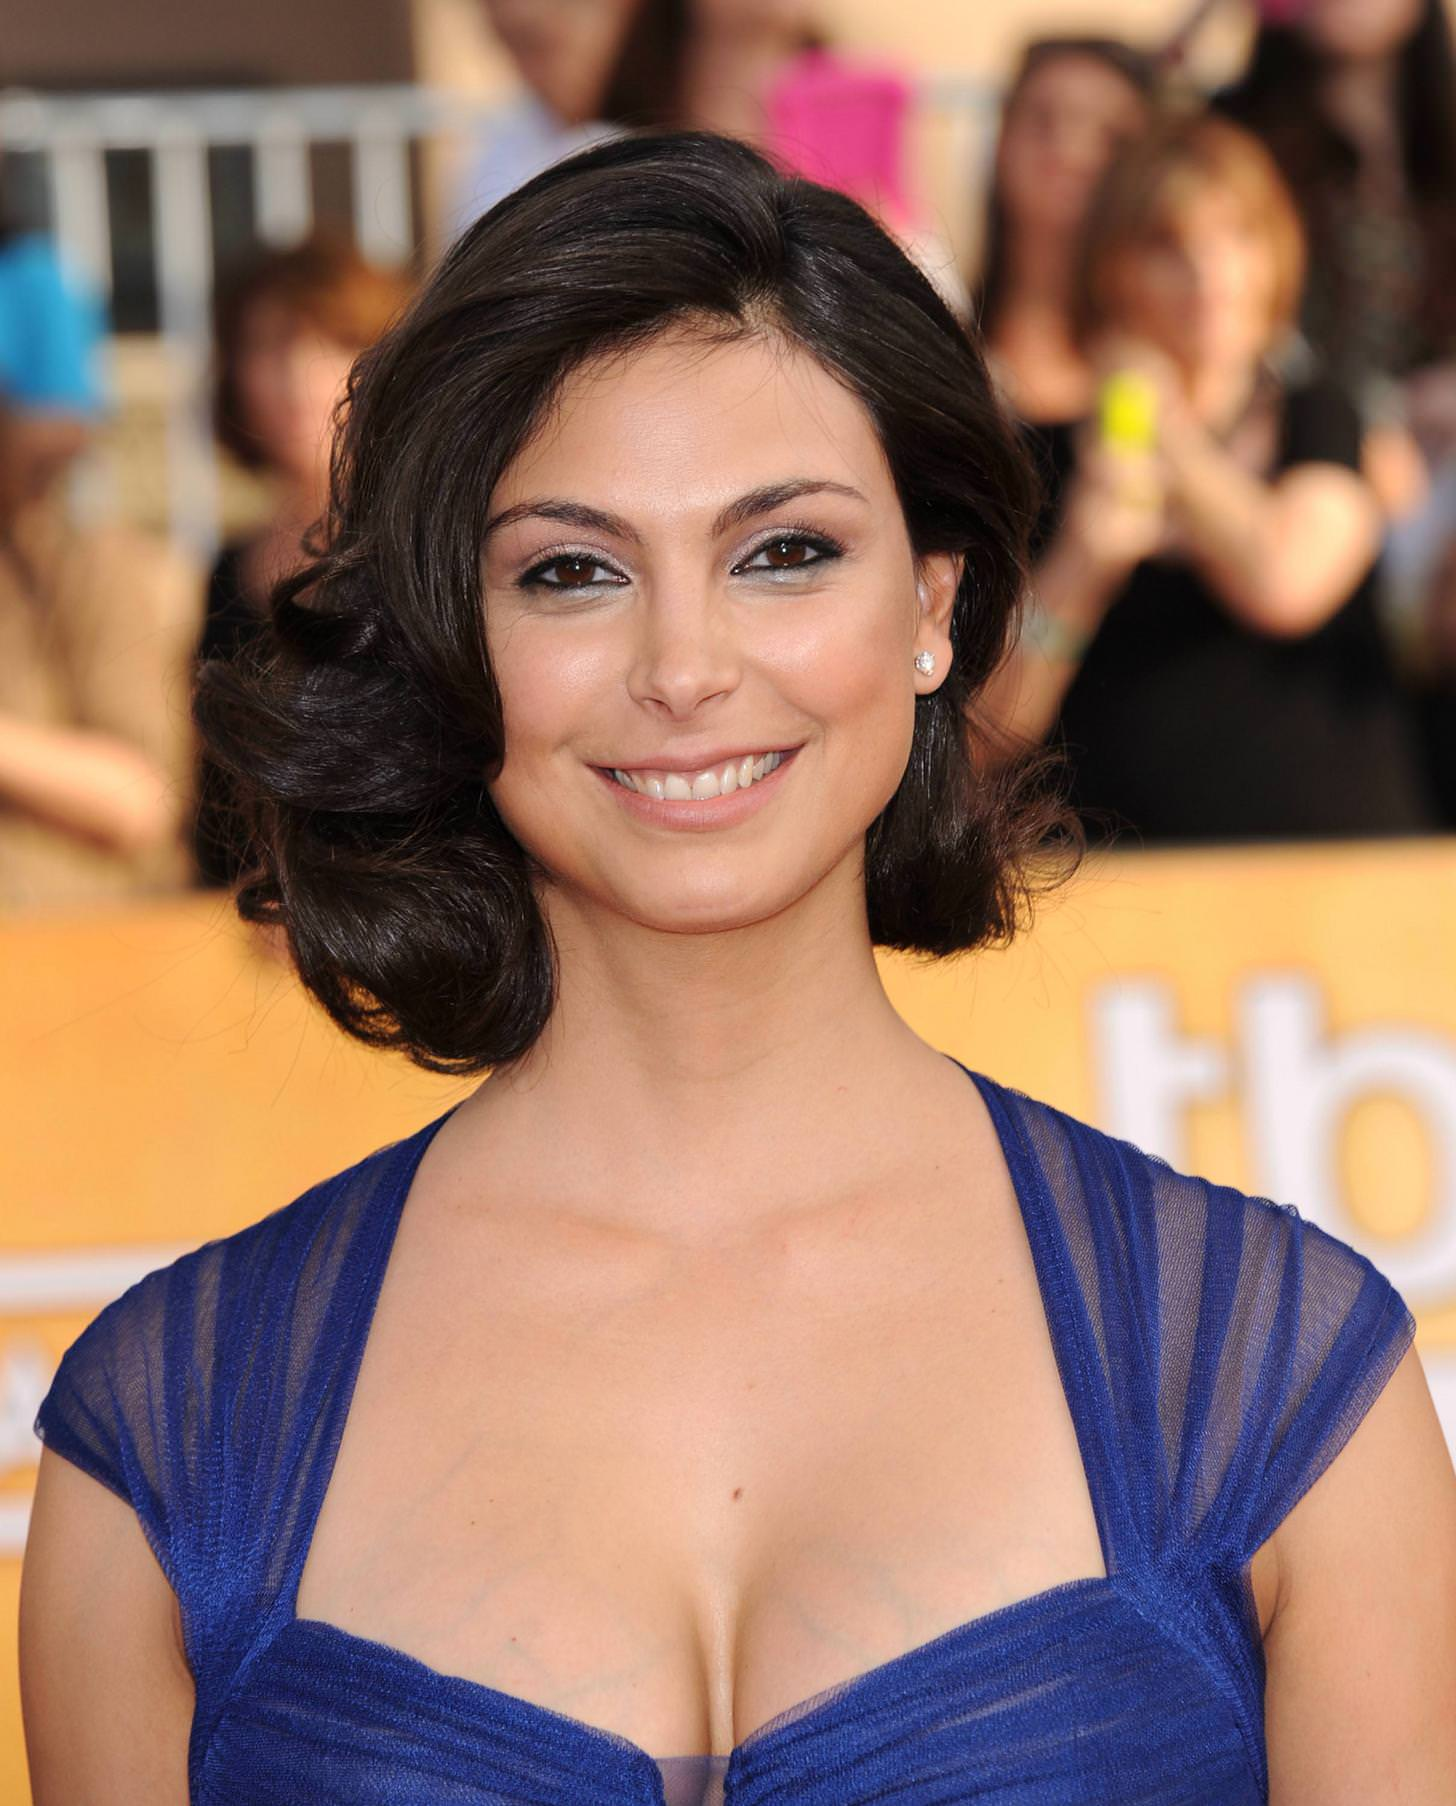 Morena Baccarin fappening